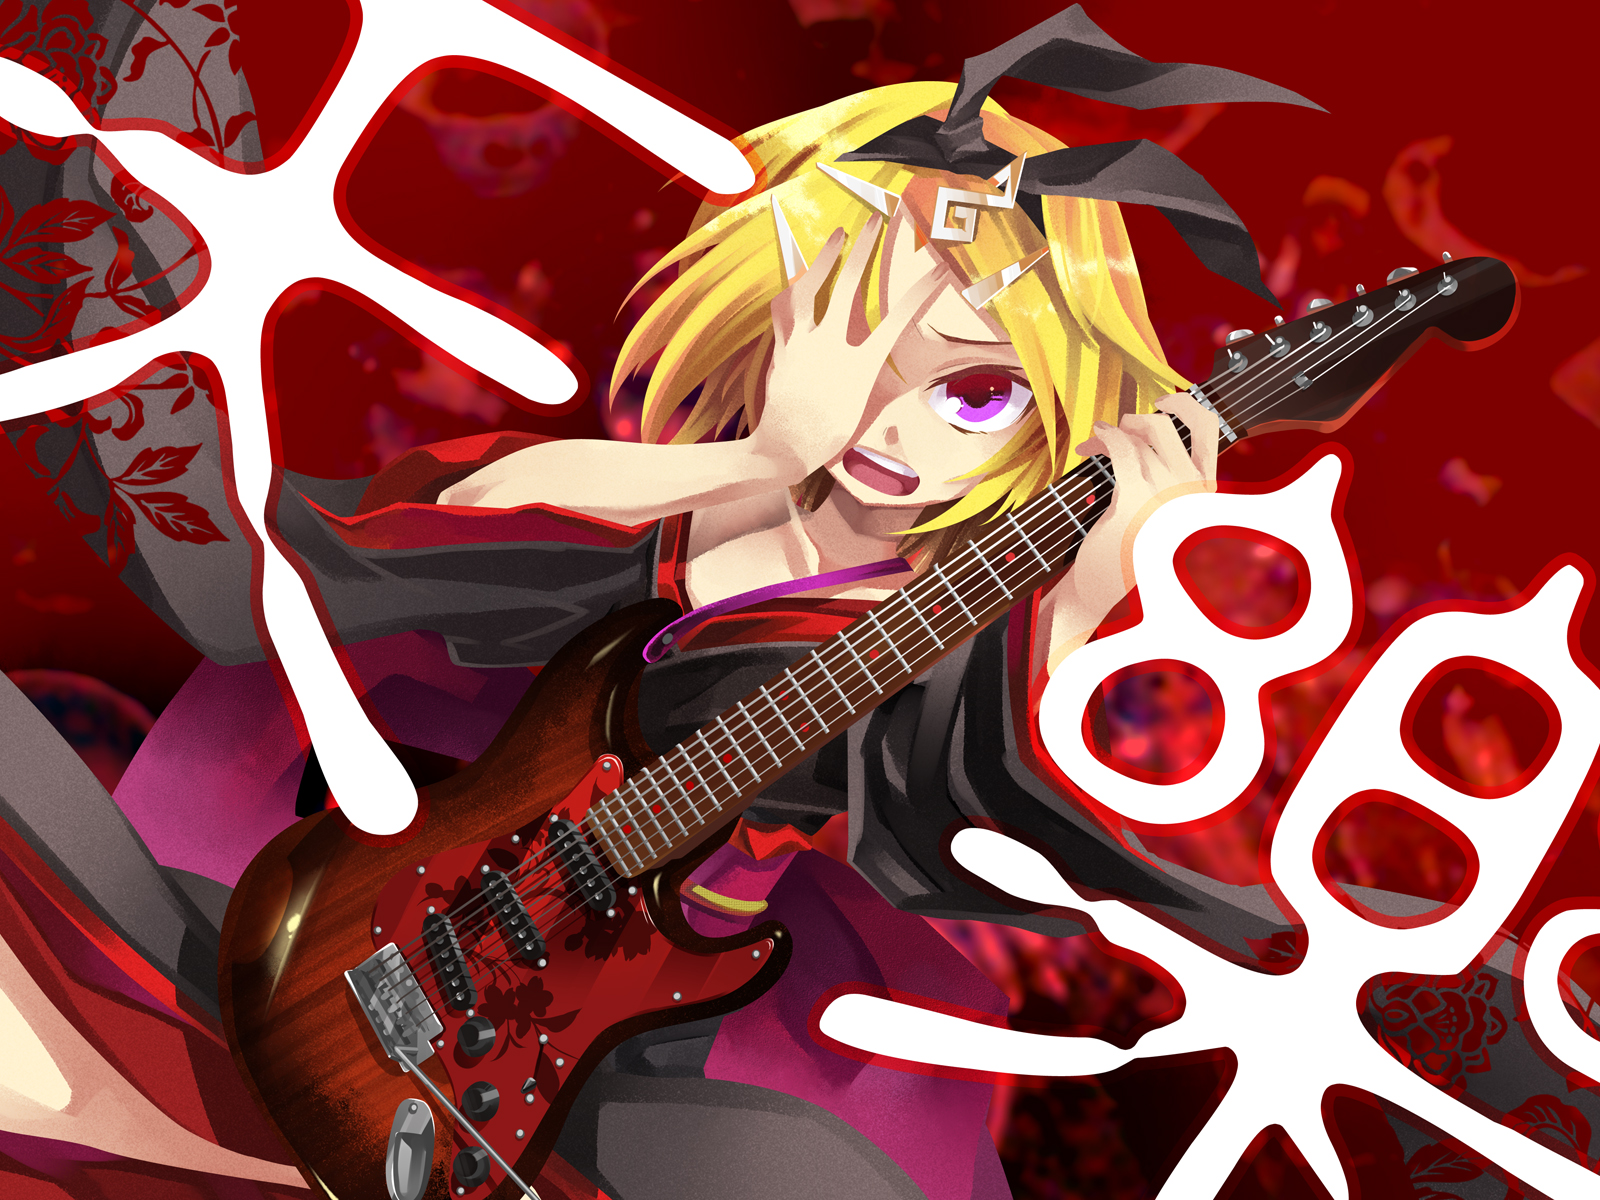 guitar instrument japanese_clothes kagamine_rin negi red vocaloid